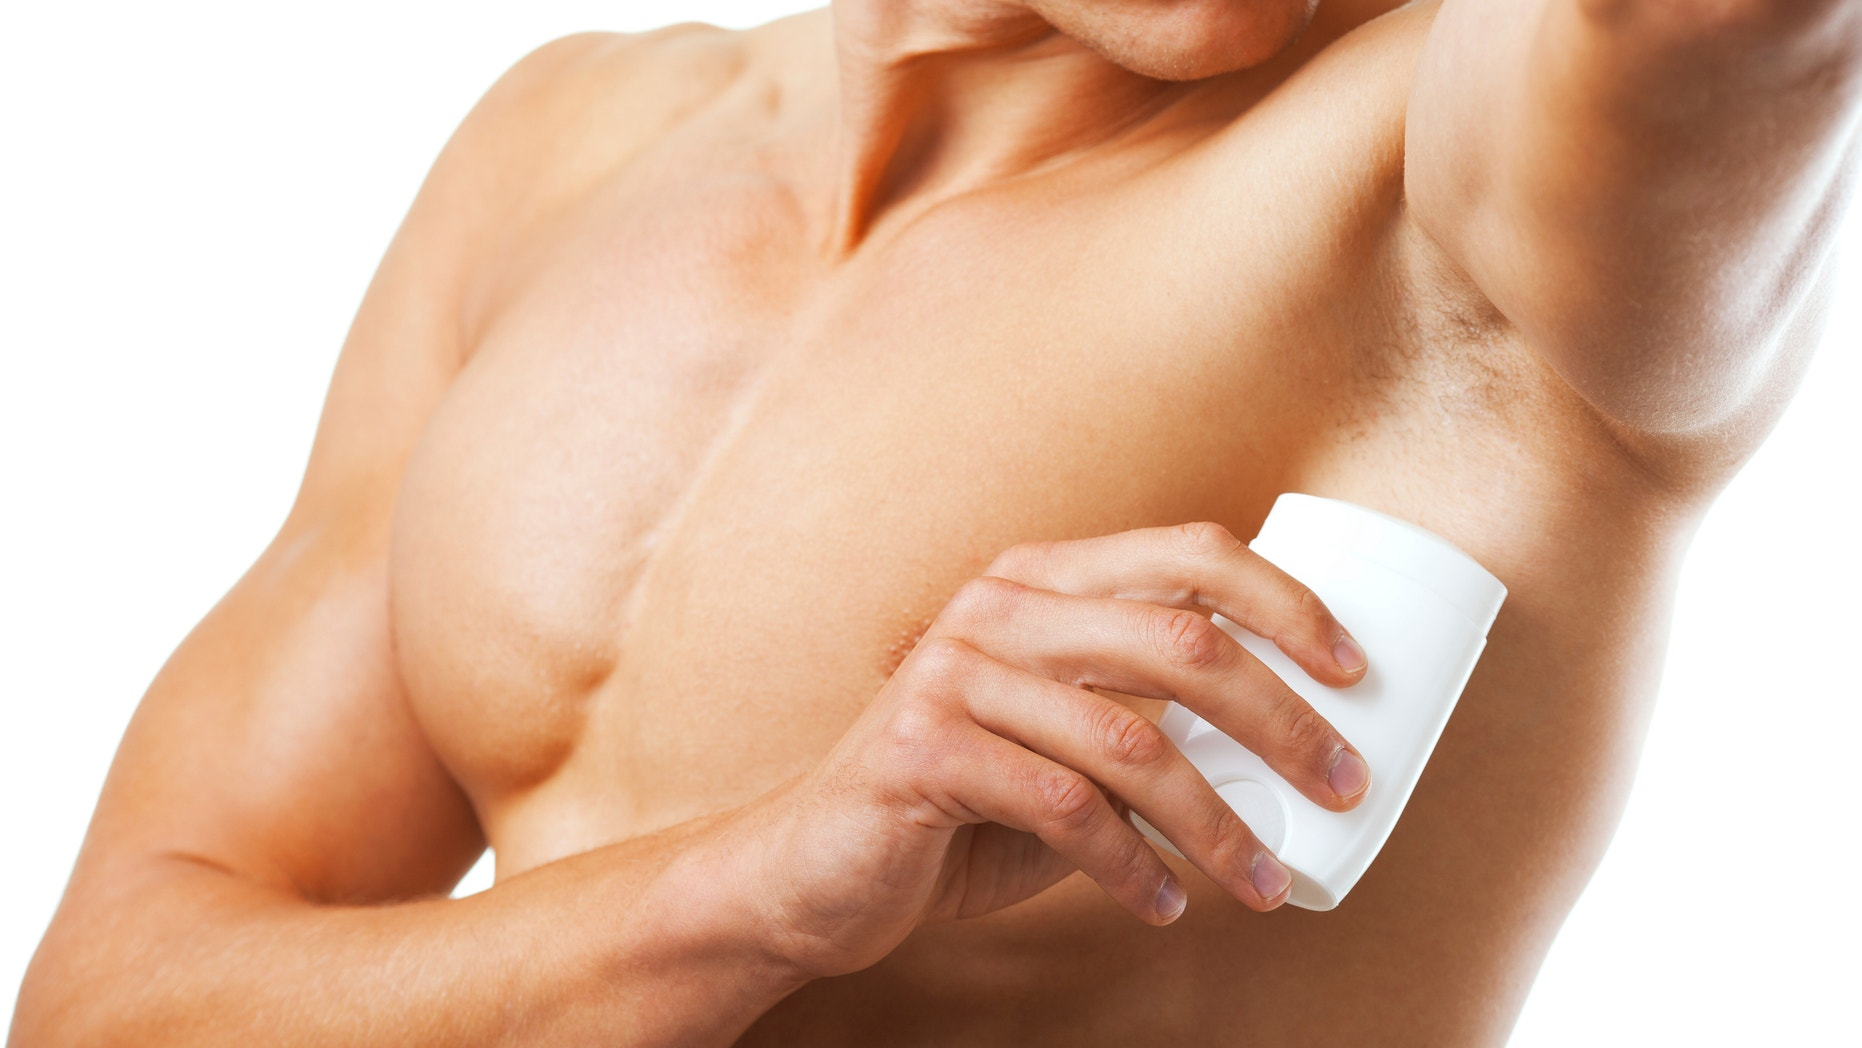 A man takes care of his hygiene by applying deodorant to his armpit.